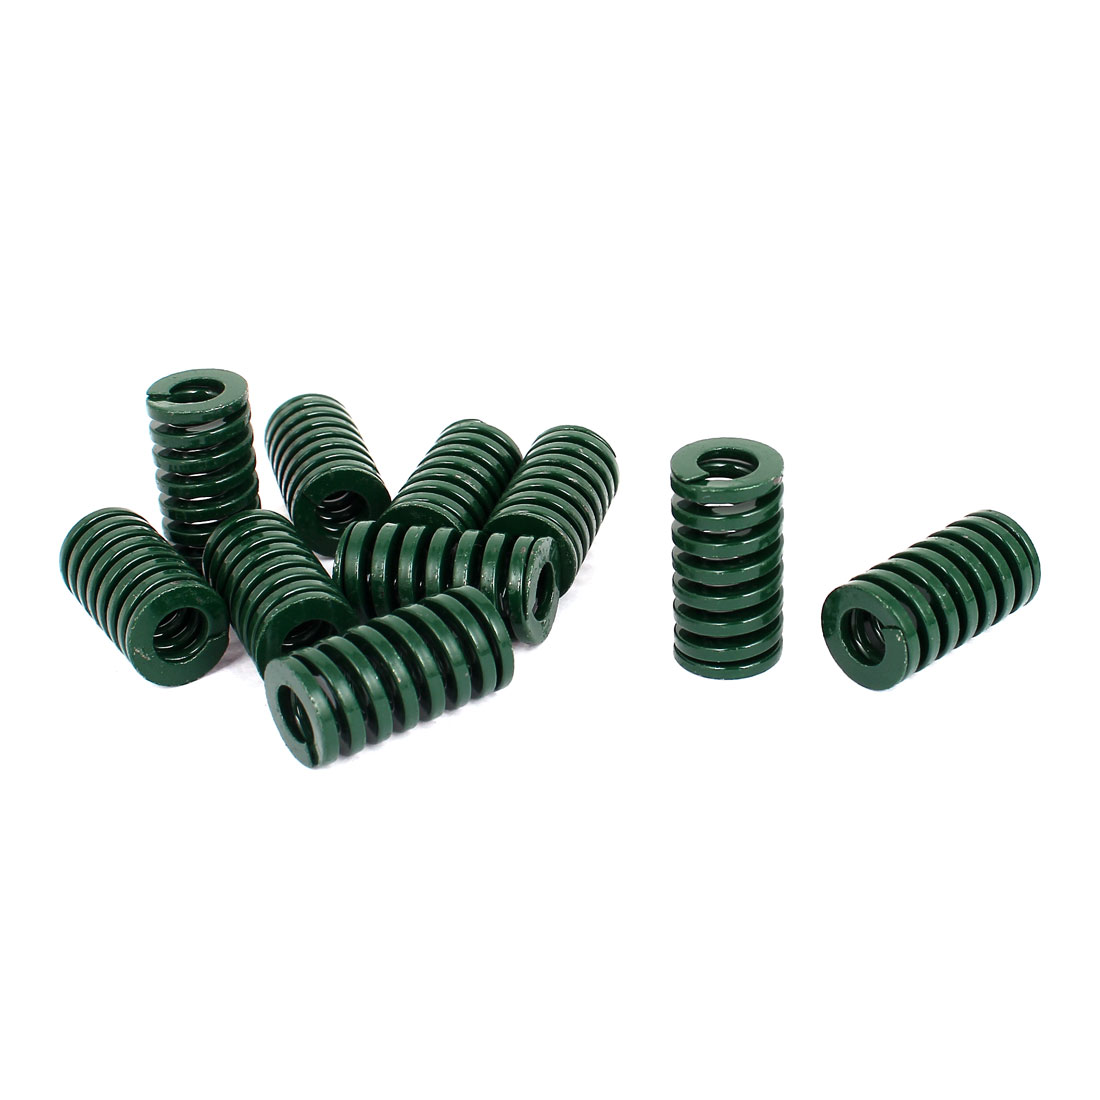 16mm OD 30mm Long Heavy Load Stamping Compression Mold Die Spring Green 10pcs